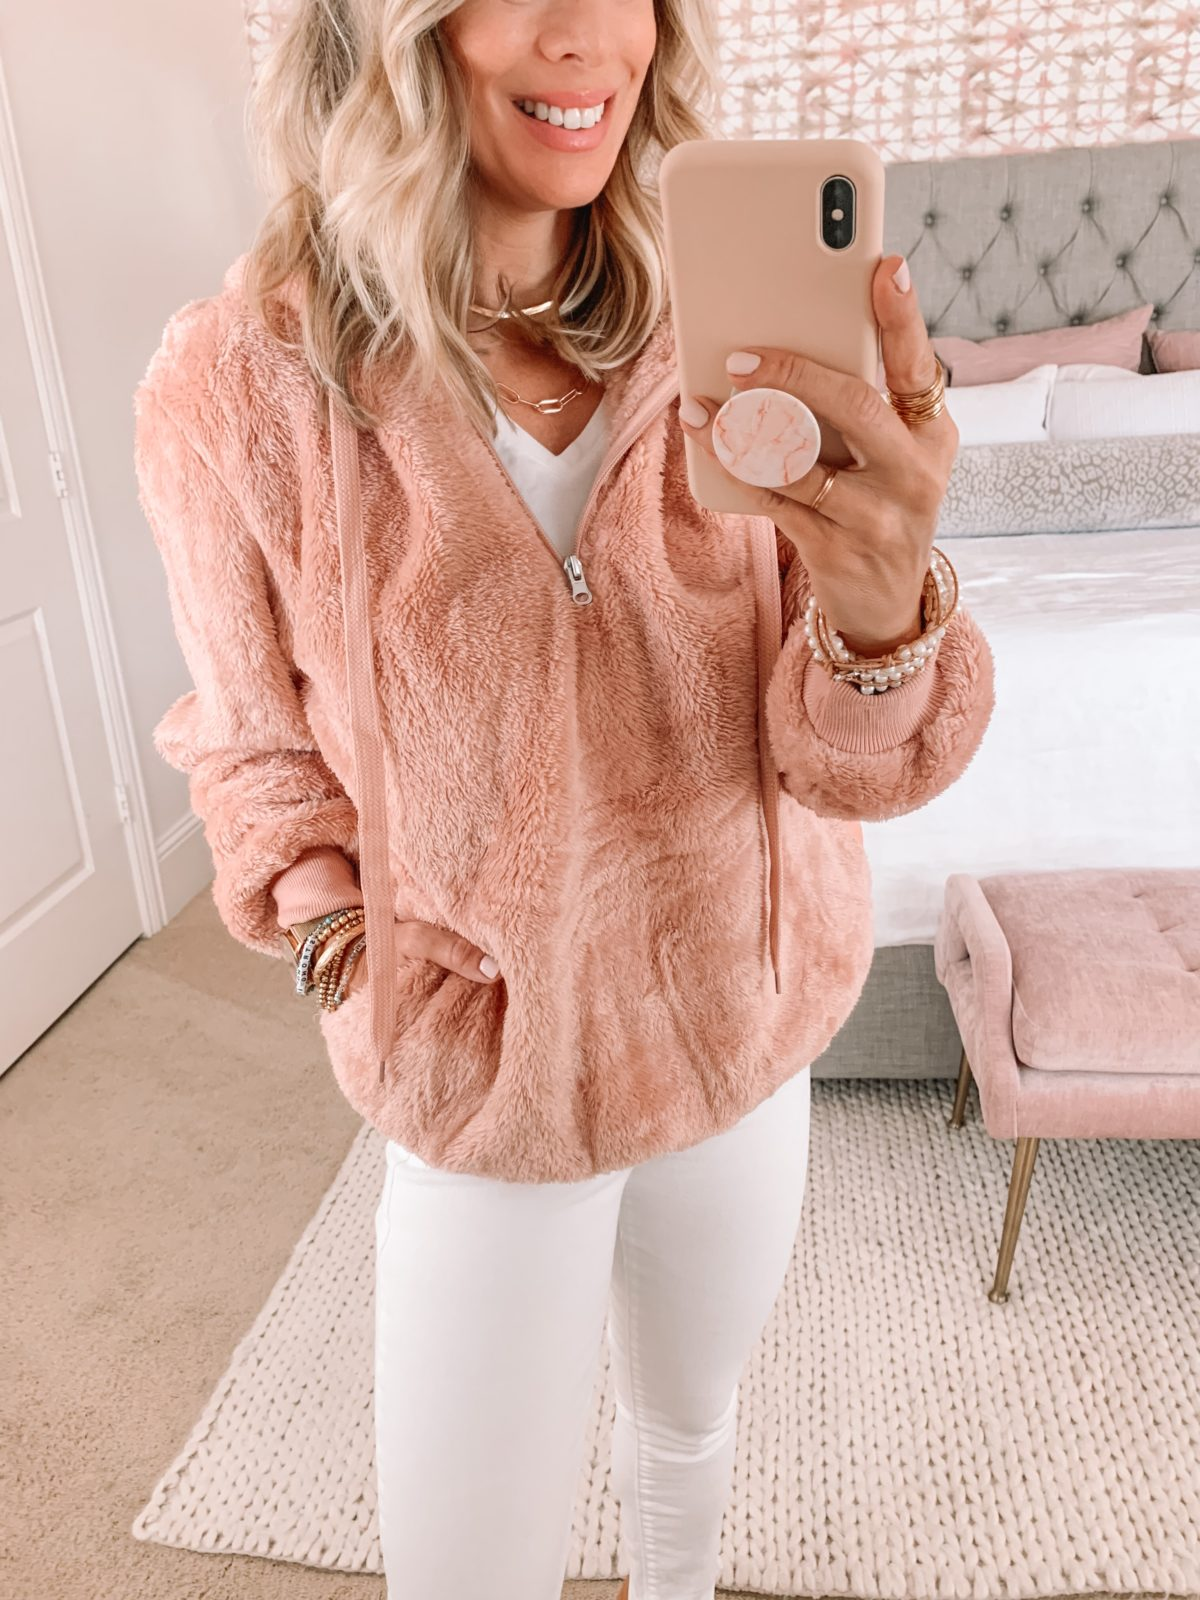 Amazon Fashion Faves, Pink Pullover, White Denim